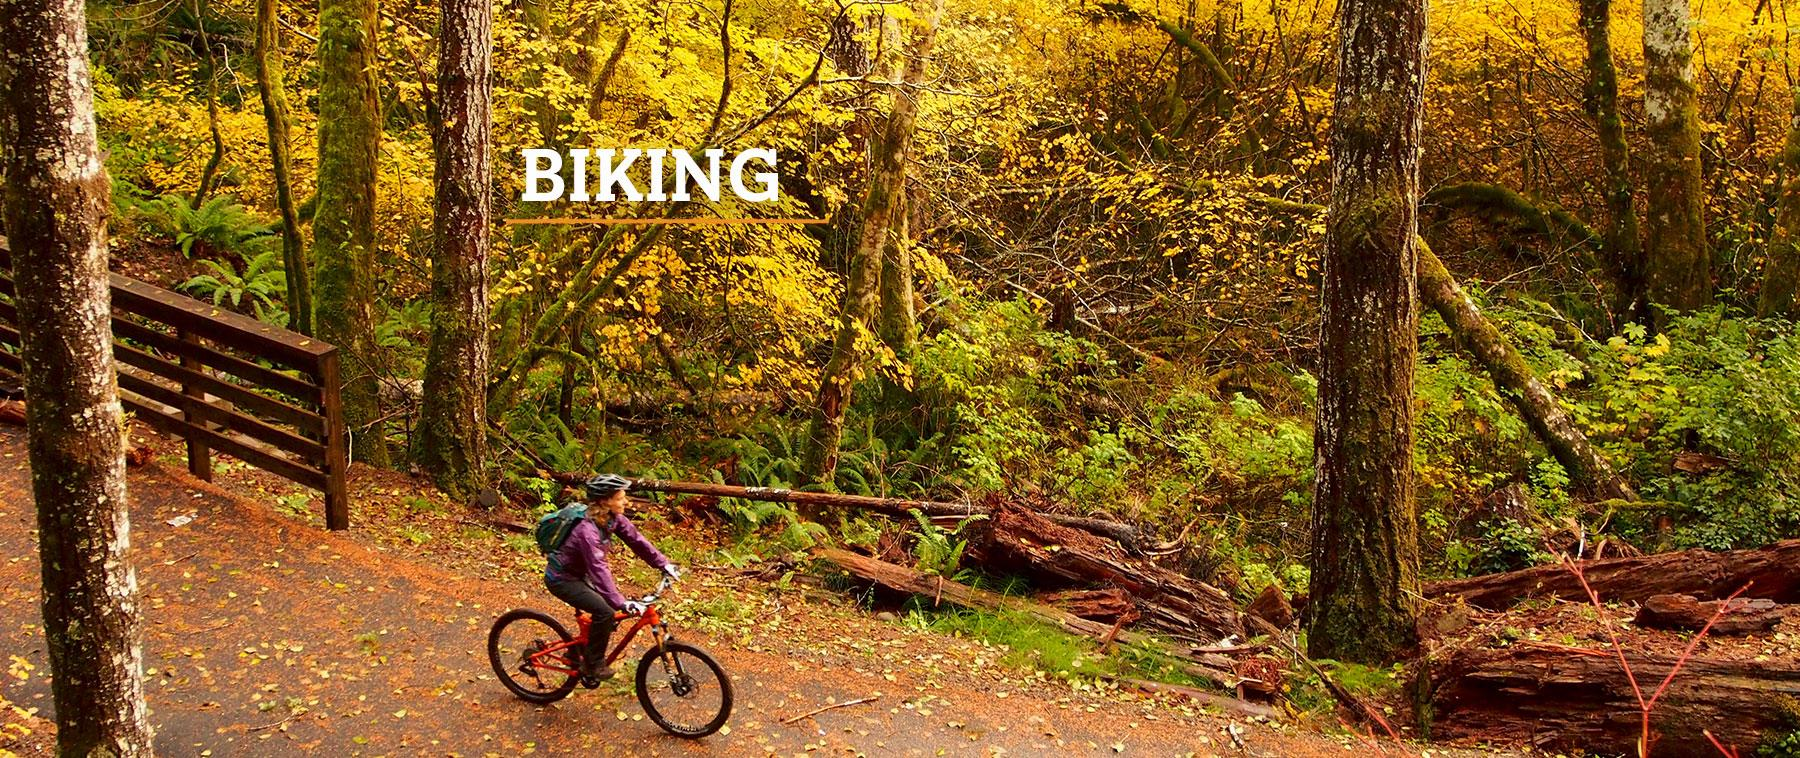 Biking on the Olympic Discovery Trail in Port Angeles